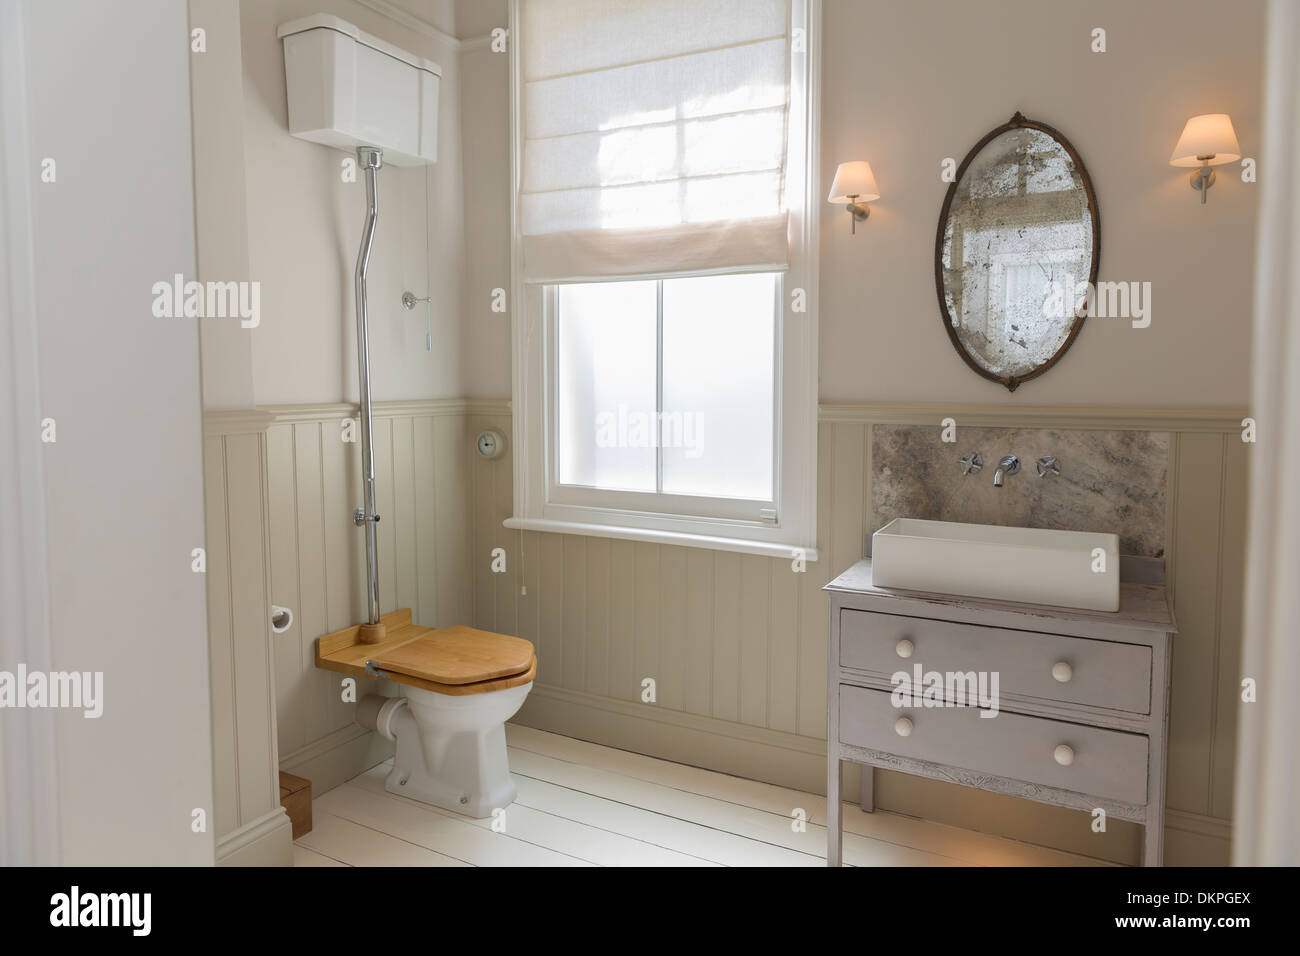 toilet water stockfotos toilet water bilder alamy. Black Bedroom Furniture Sets. Home Design Ideas